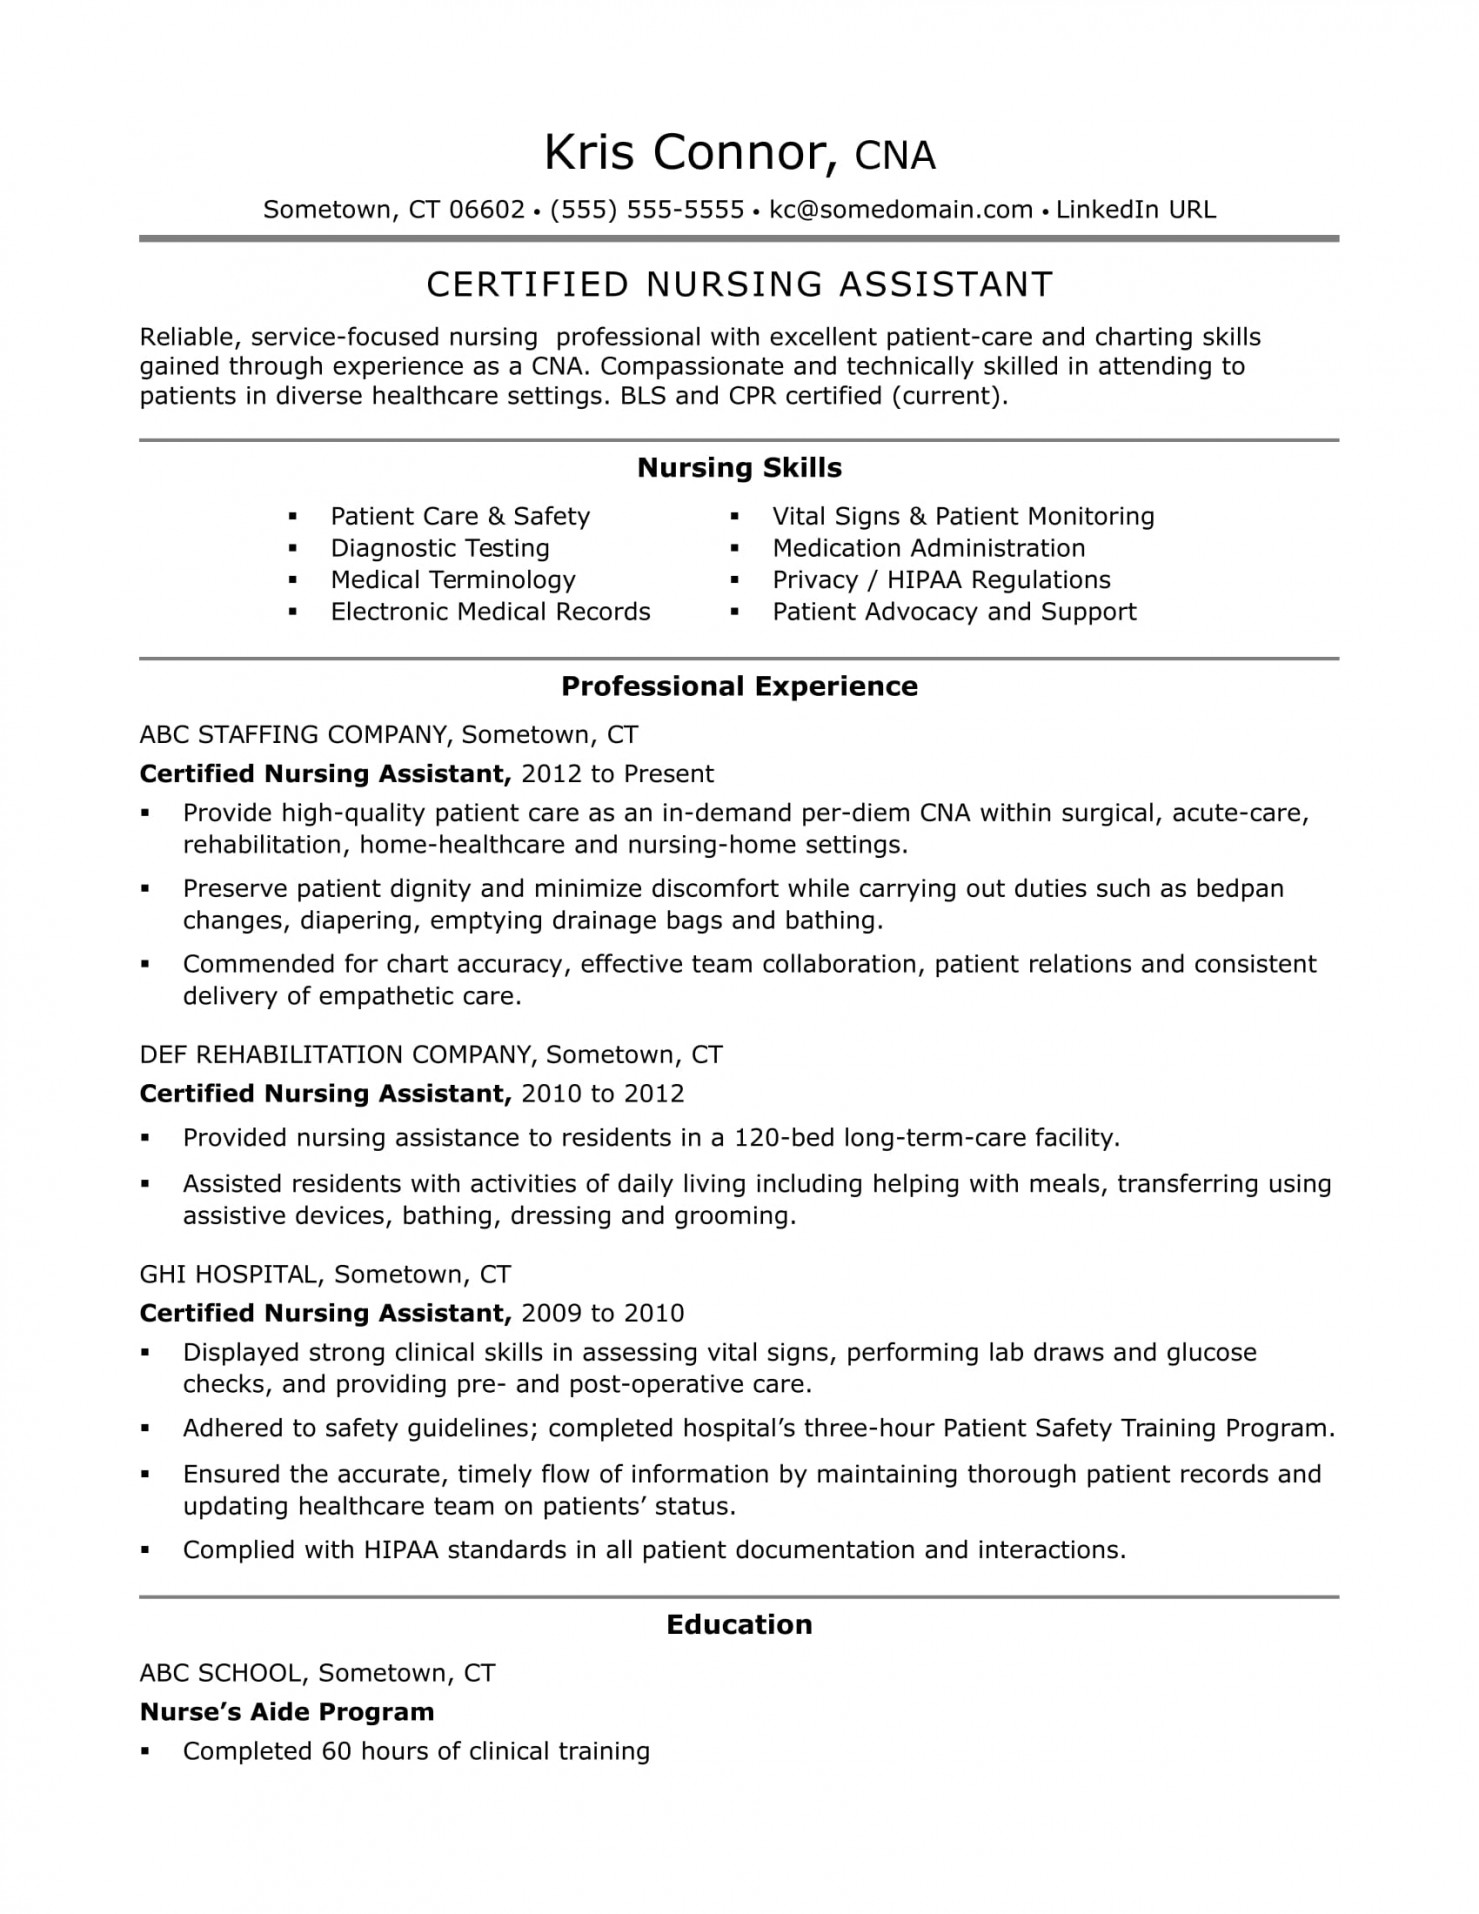 resume examples template builder example ken tool cna skills for cnas monster the shop Resume Ken Coleman Resume Tool